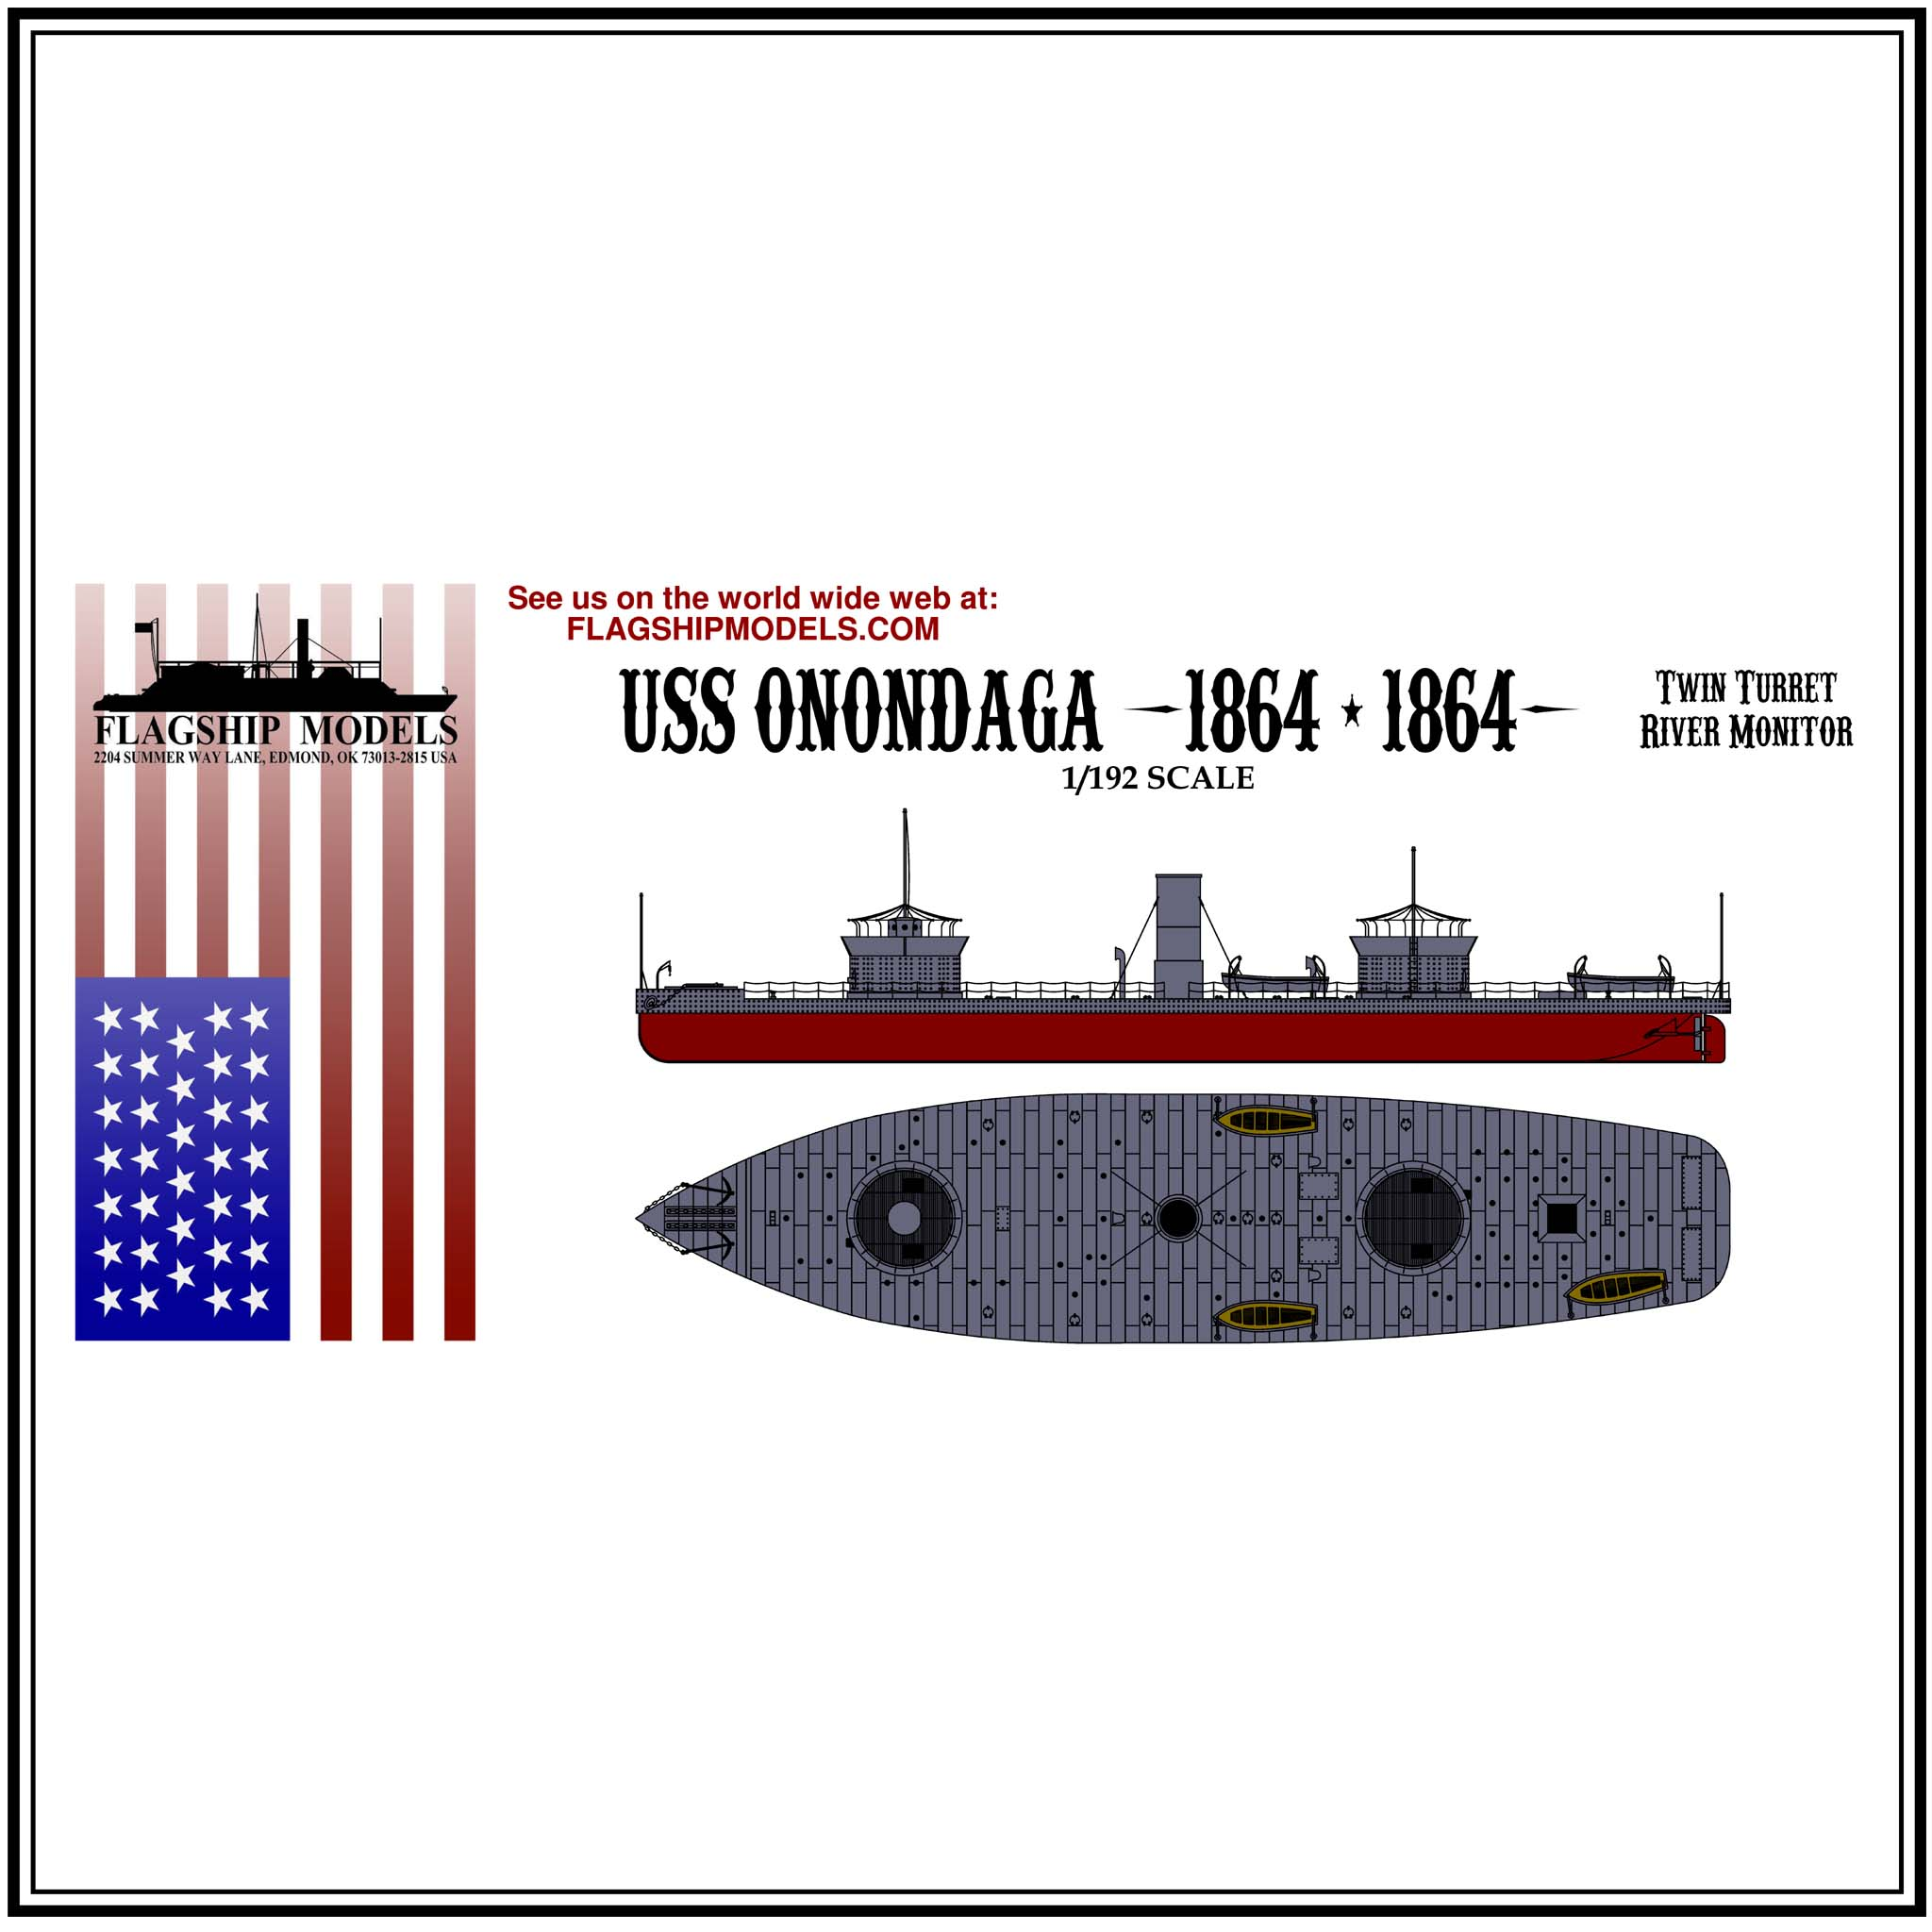 "USS ONANDAGA ironclad ram (14"" long, detail set incl.)"